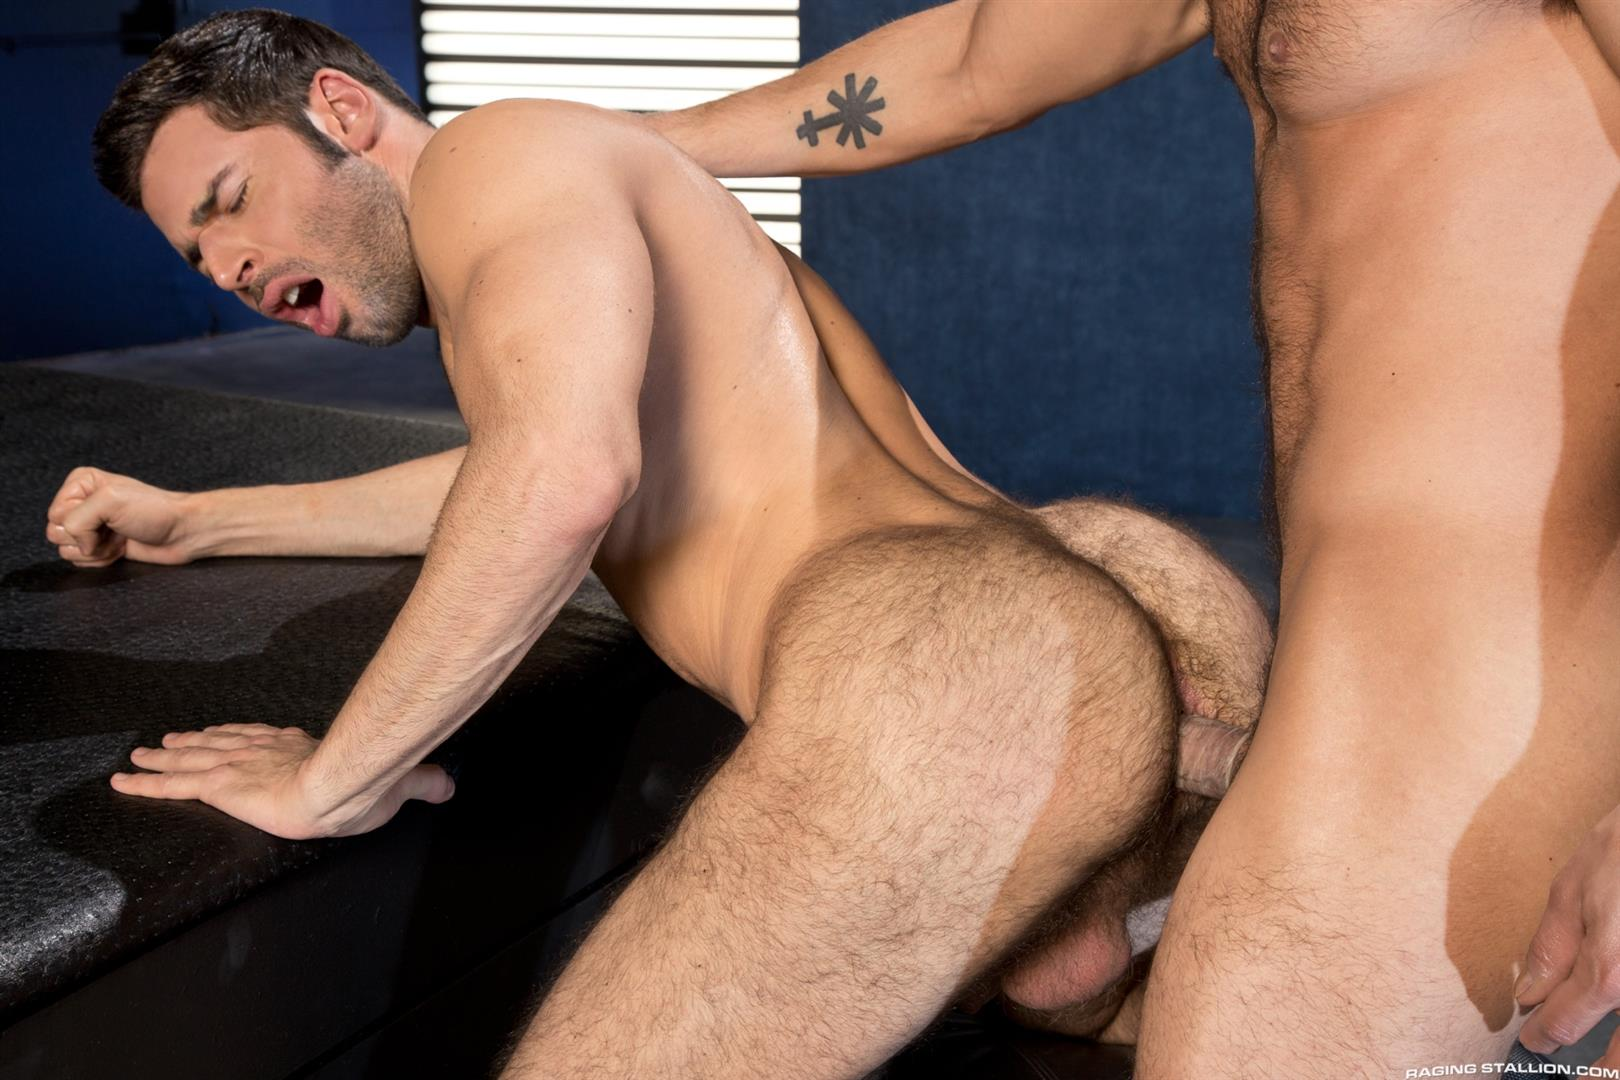 Raging-Stallion-Adam-Ramzi-and-Dario-Beck-Hairy-Ass-And-A-Big-Uncut-Cock-Amateur-Gay-Porn-13 Fucking A Hairy Ass Muscle Jock Ass With A Big Uncut Cock